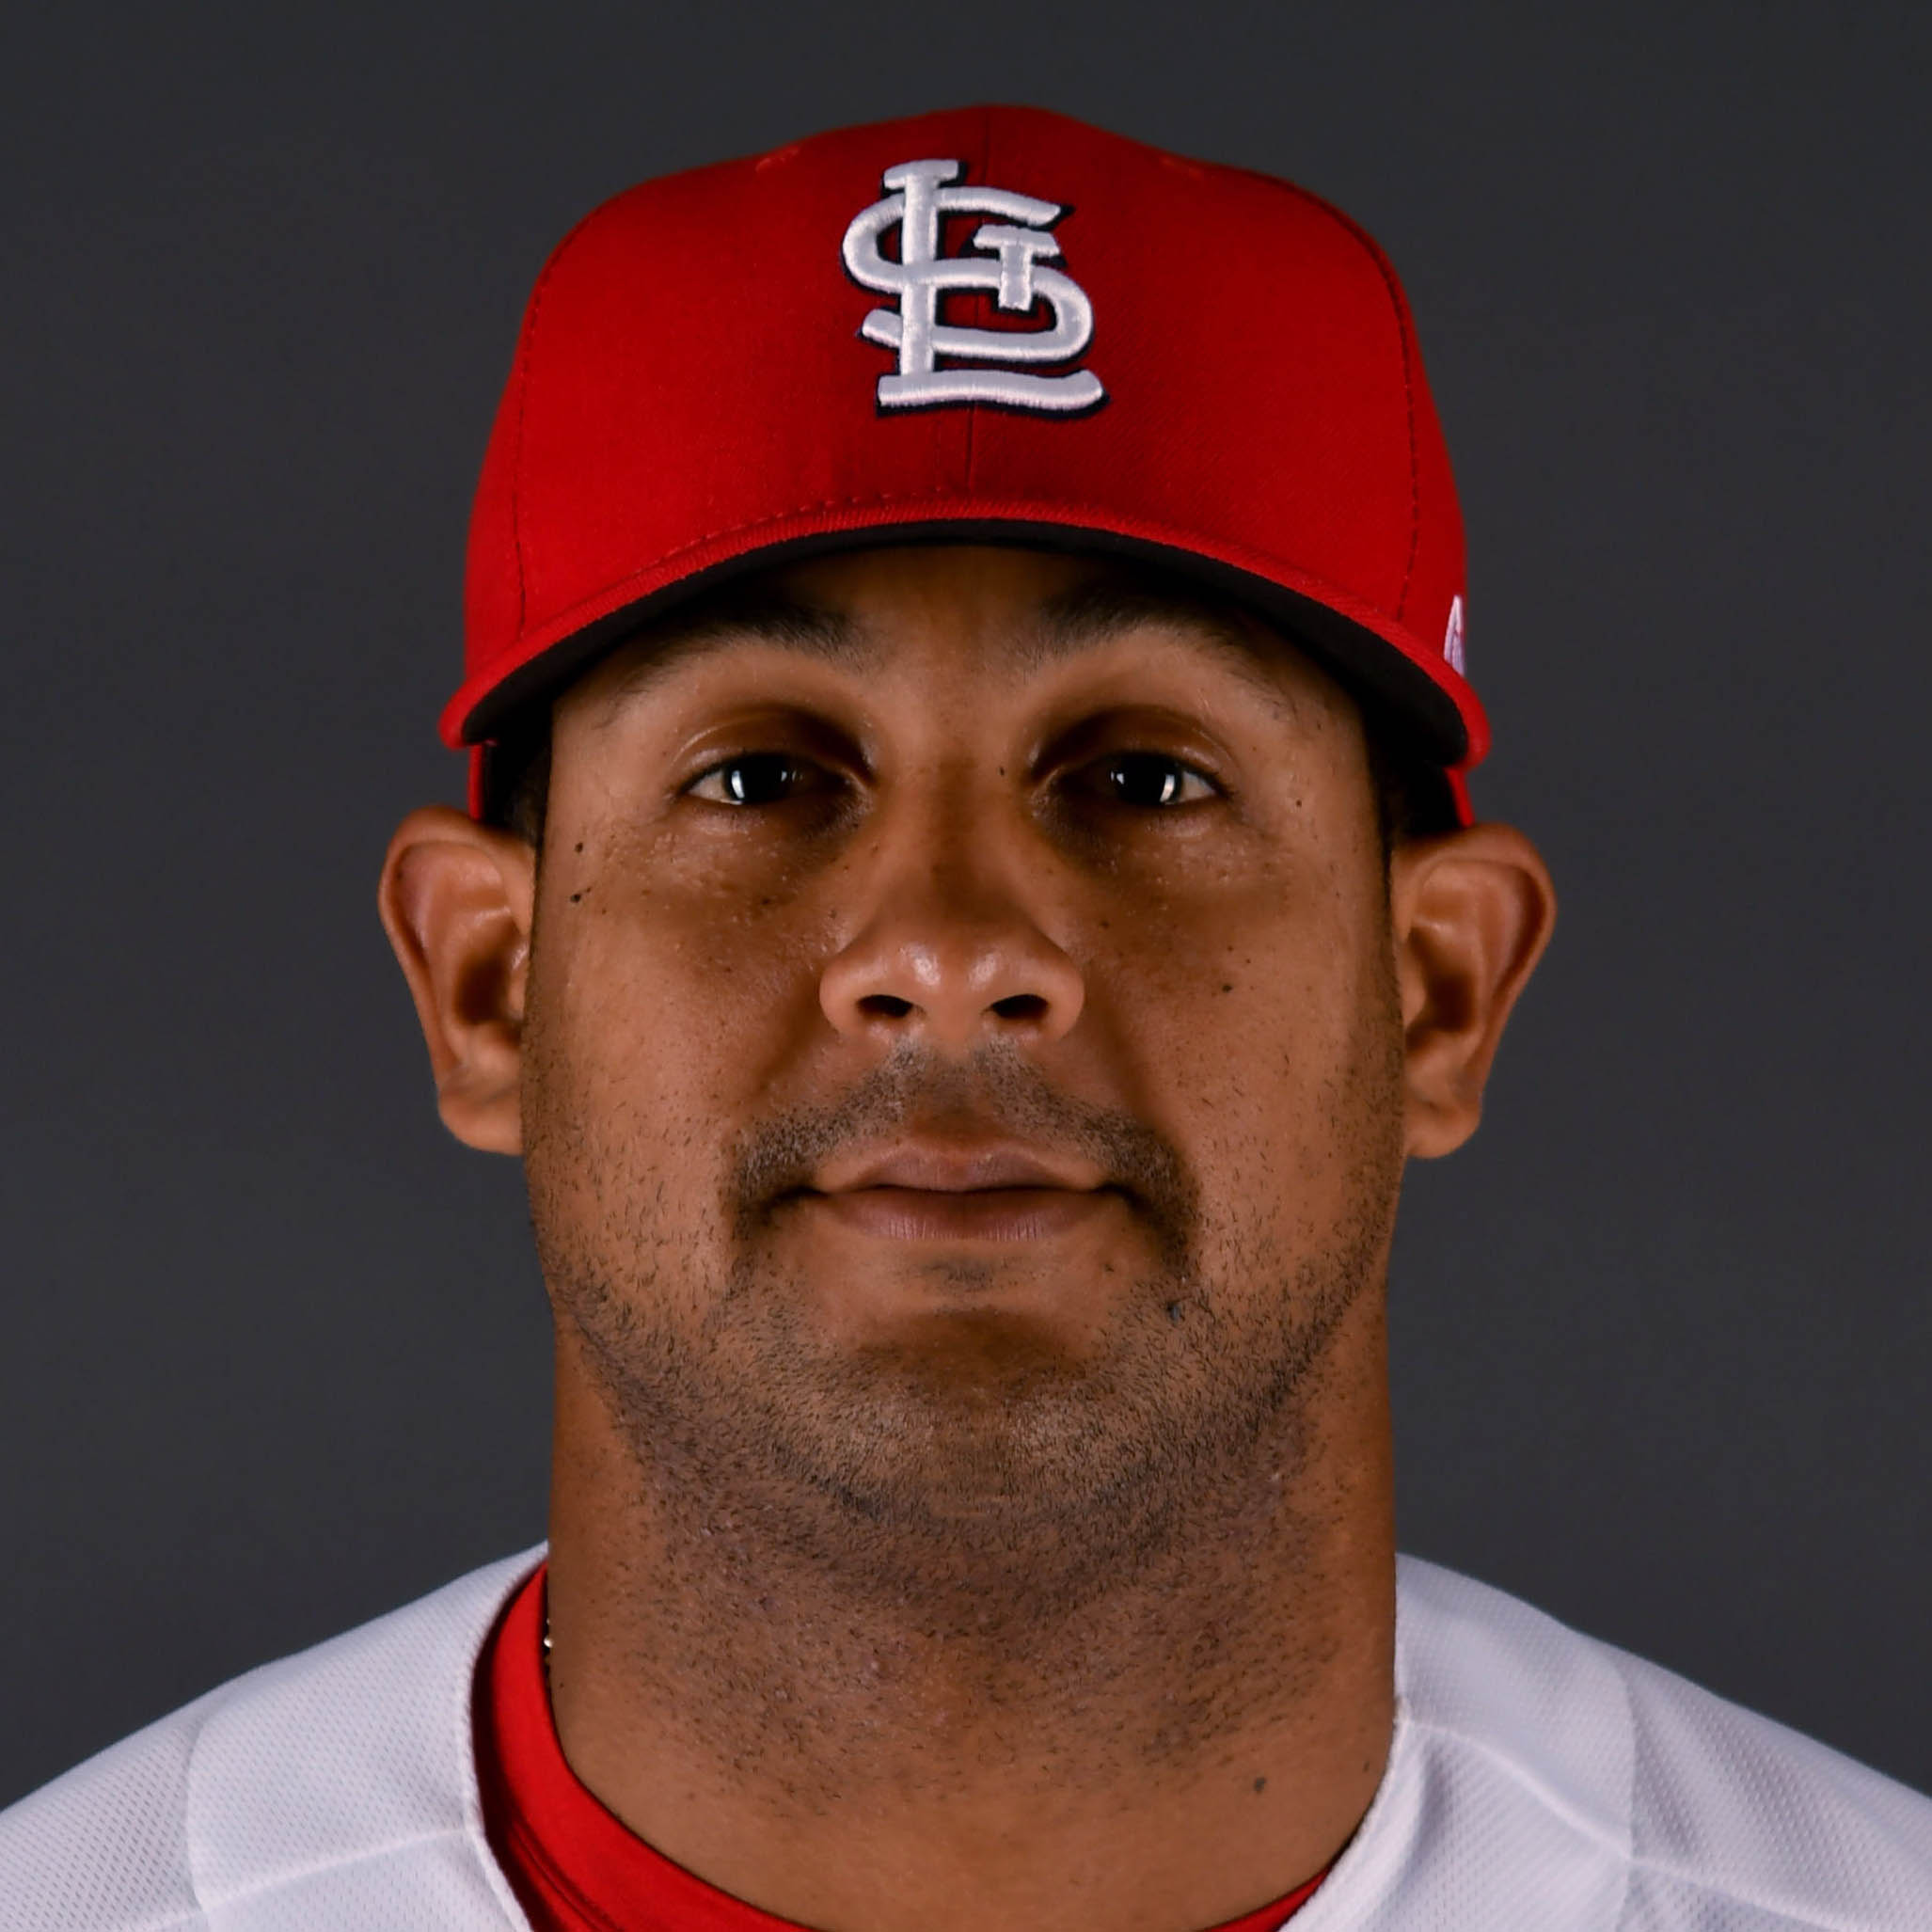 Jose Martinez (R) Headshot